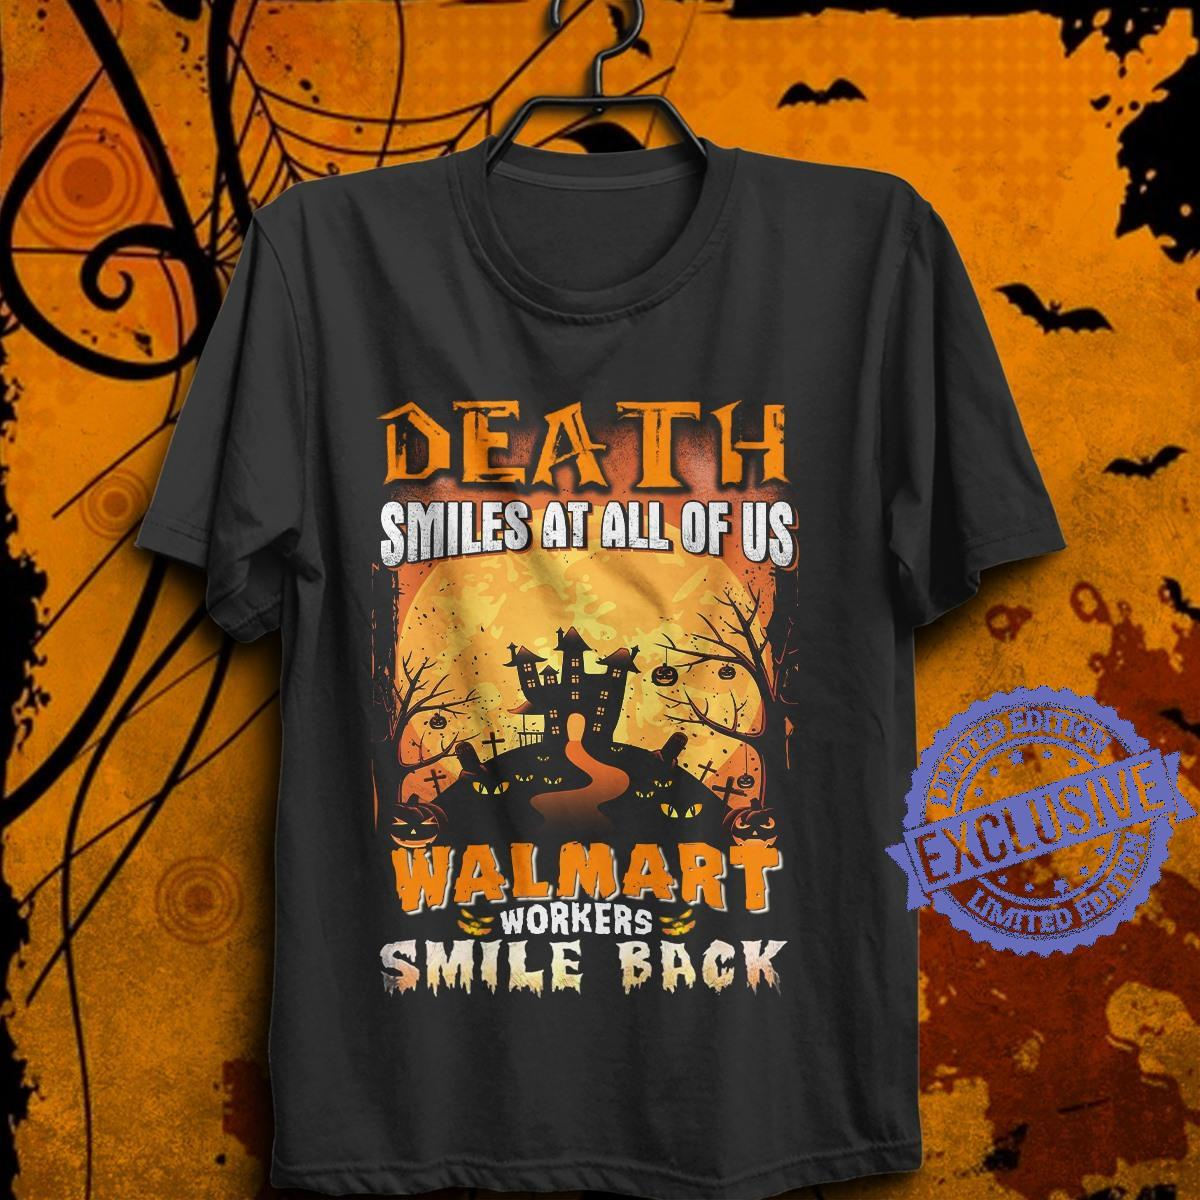 Death smiles at all of us walmart workers smile back shirt